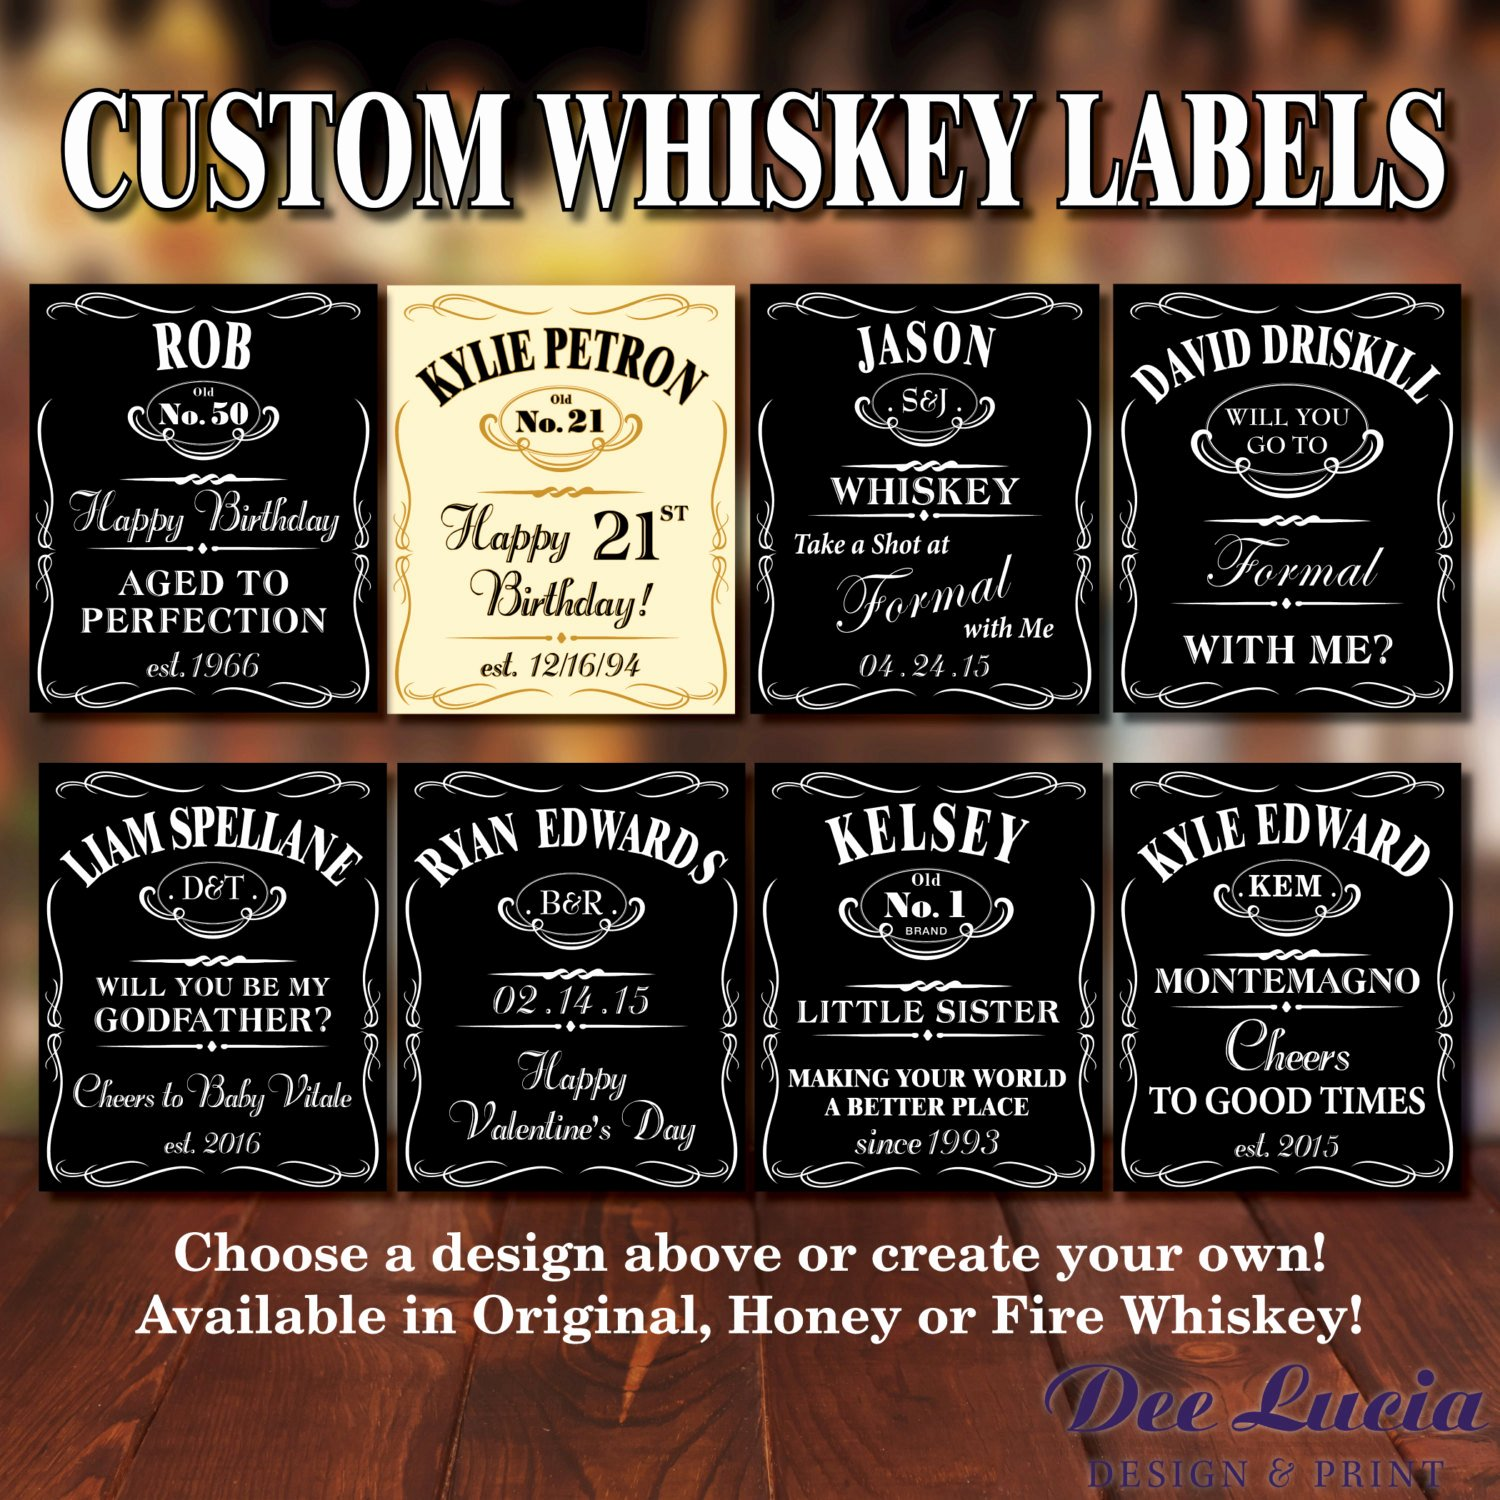 Liquor Bottle Labels Template New Custom Whiskey Bottle Labels for Any Occasion